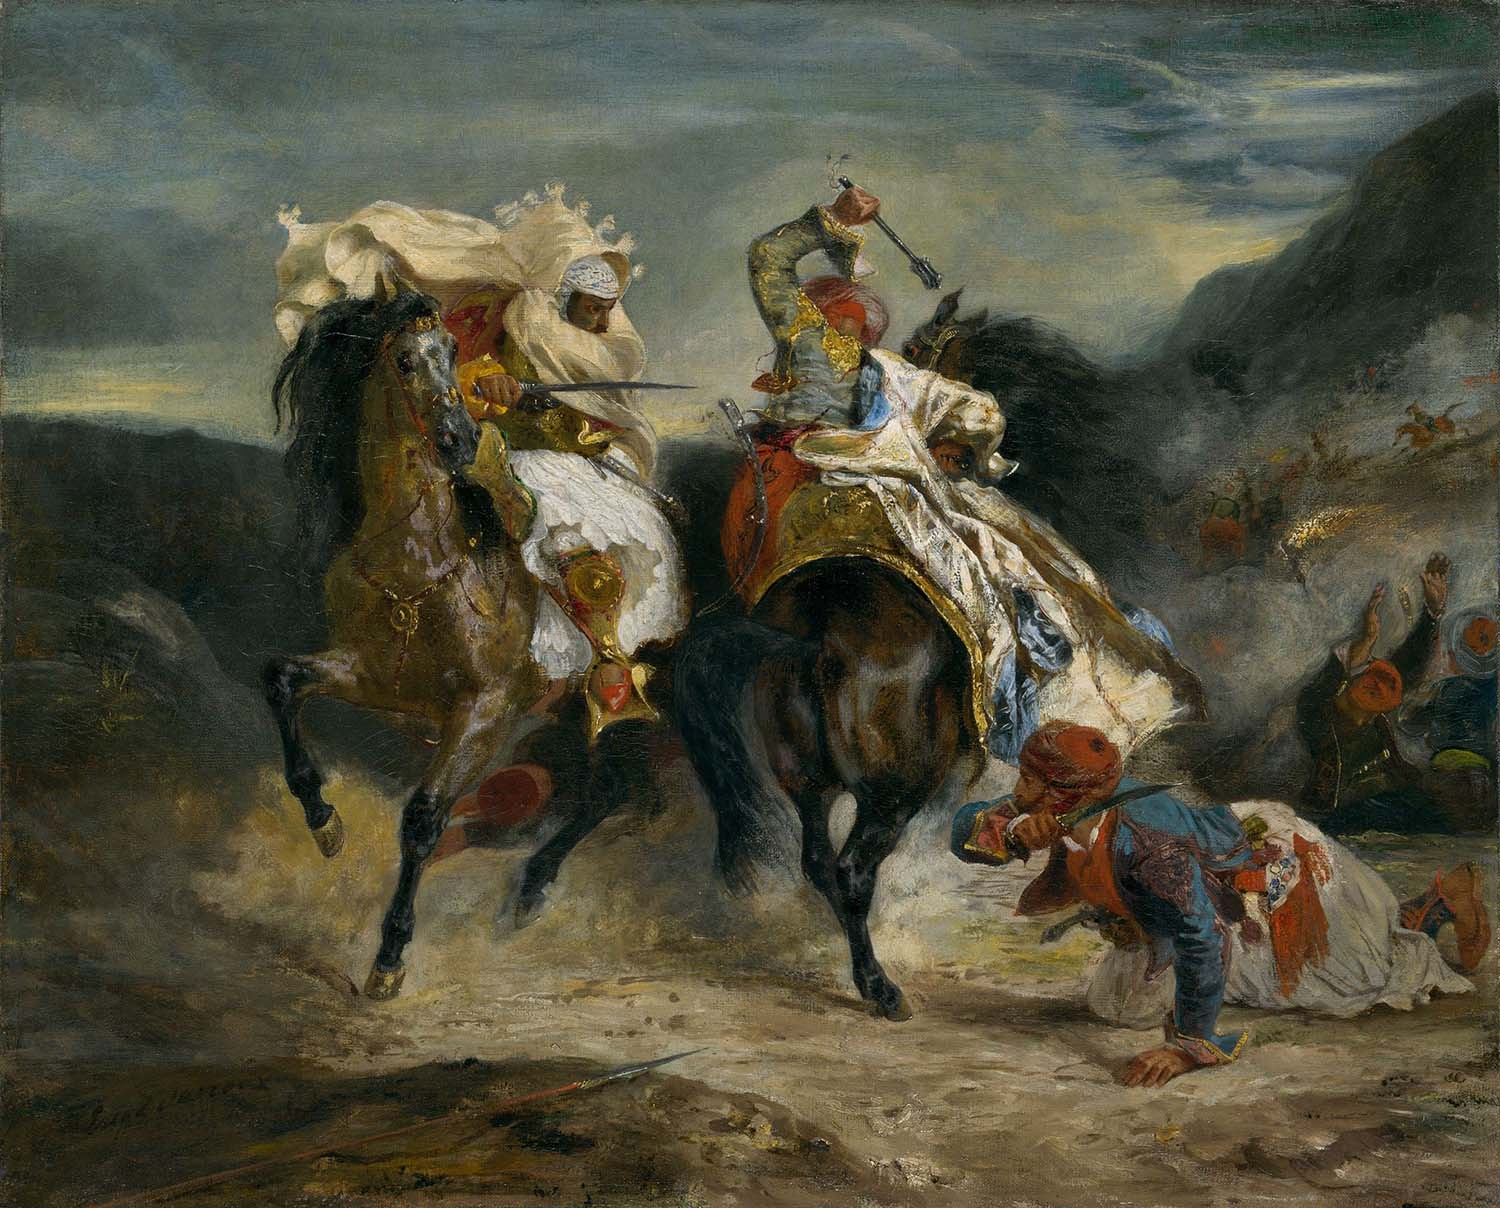 The Combat of the Giaour and Hassan, inspired by Bryon's poem 'The Giaour', Eugène Delacroix, 1826.